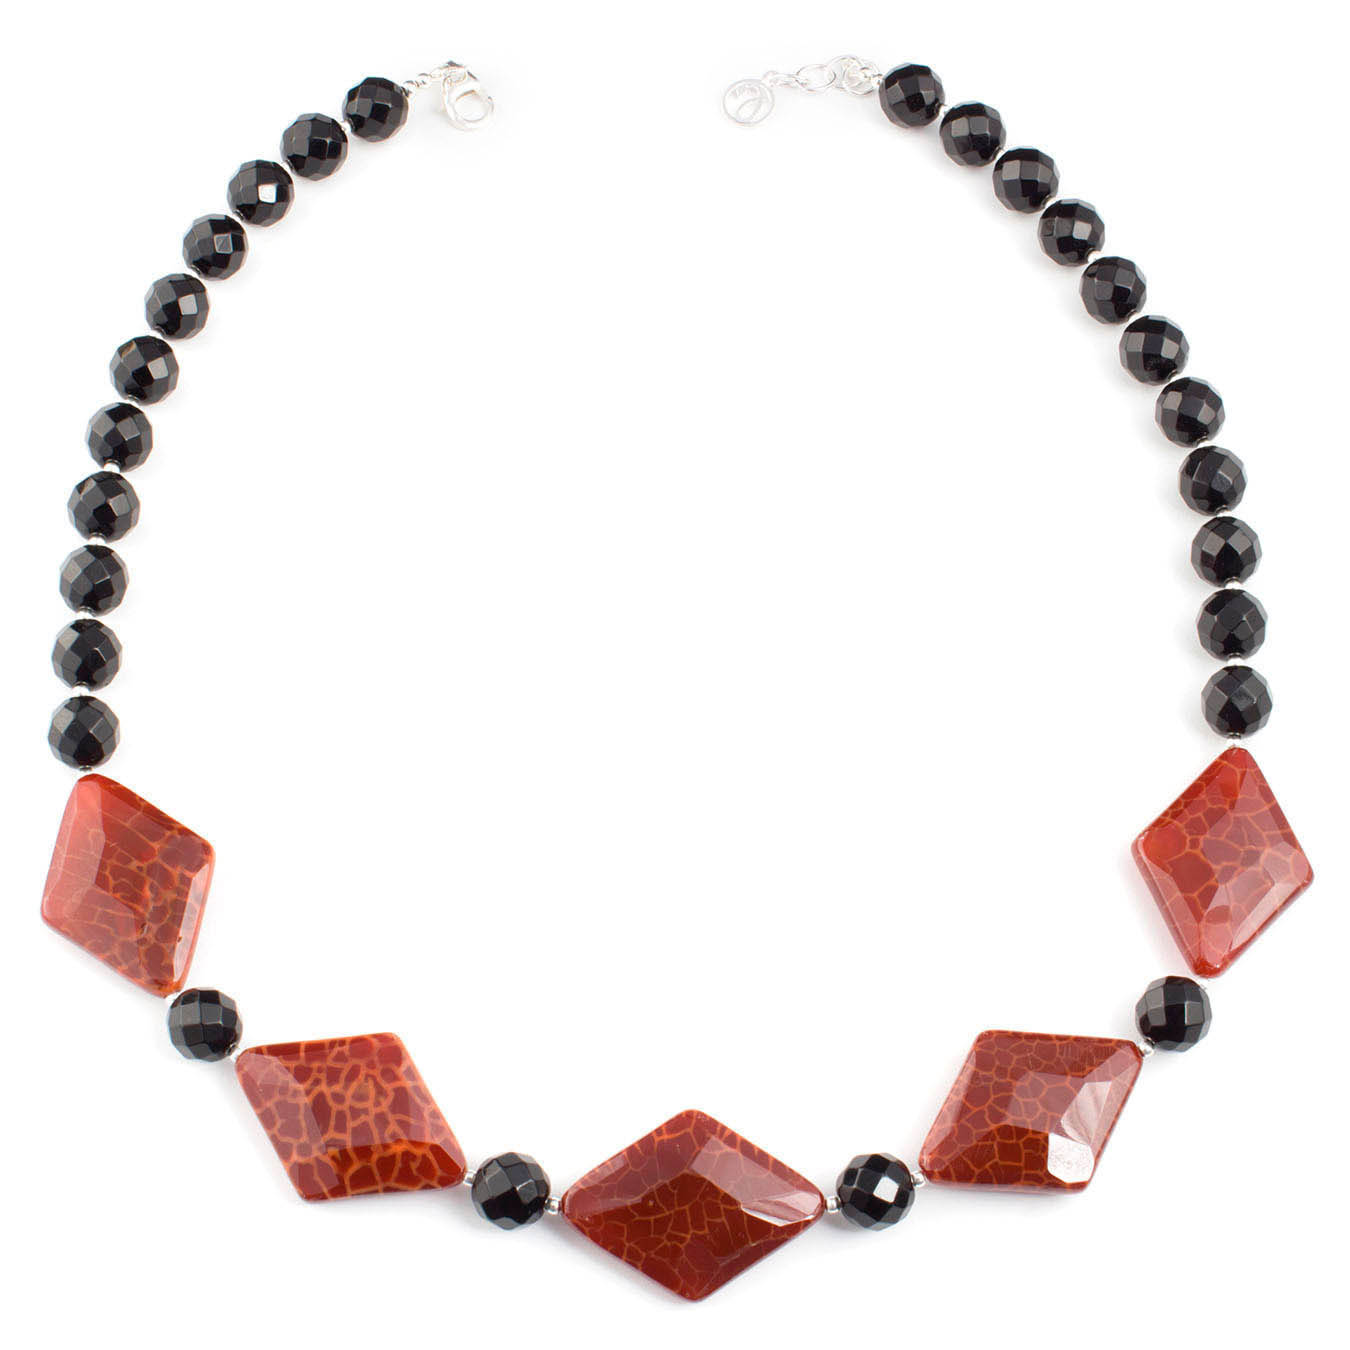 Semi-precious gemstone handcrafted necklace made with red fire agate